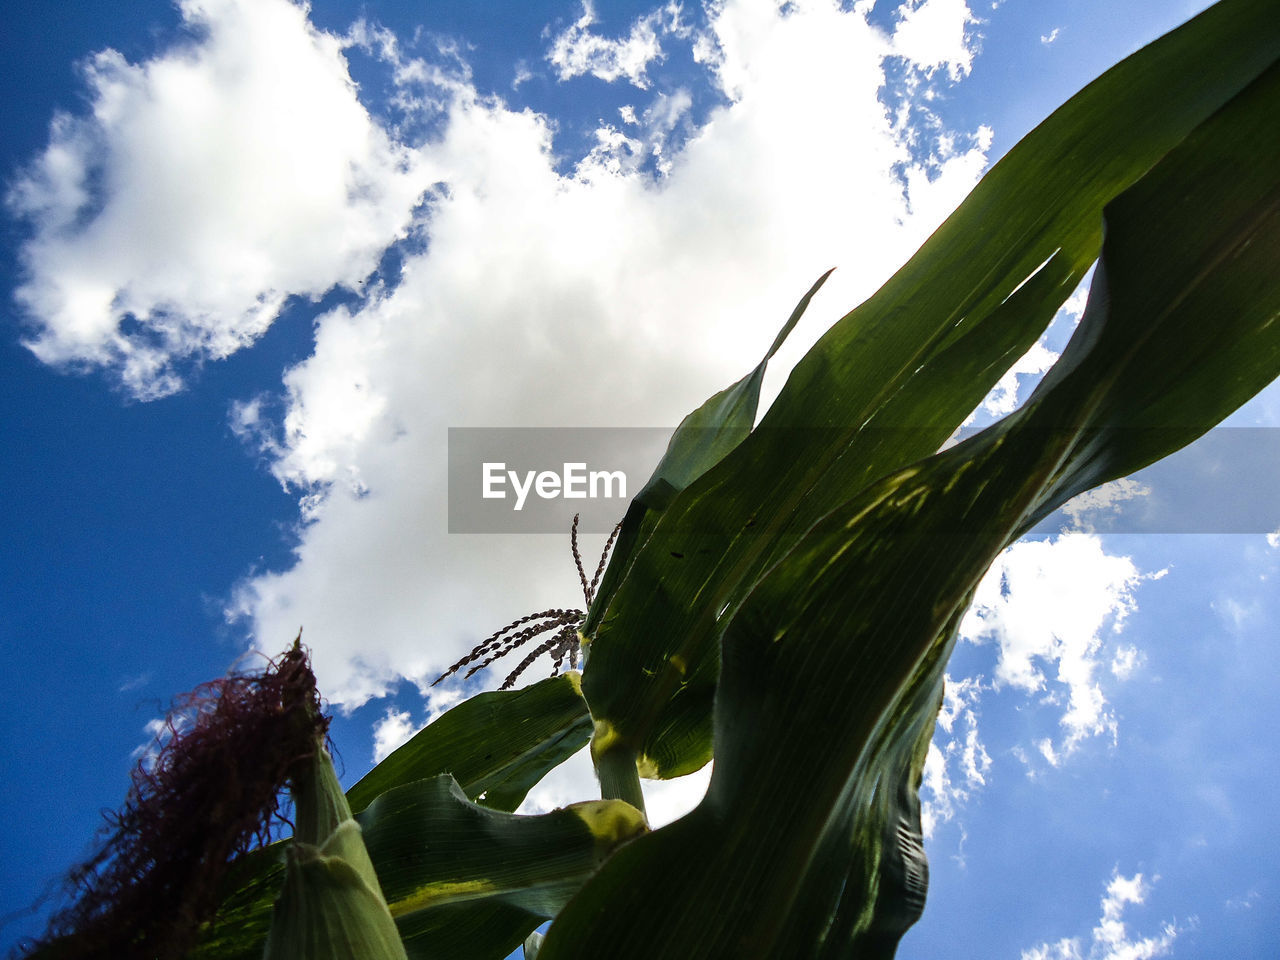 sky, cloud - sky, low angle view, plant, nature, day, green color, plant part, growth, leaf, tree, no people, sunlight, outdoors, beauty in nature, banana tree, banana, tranquility, close-up, leaves